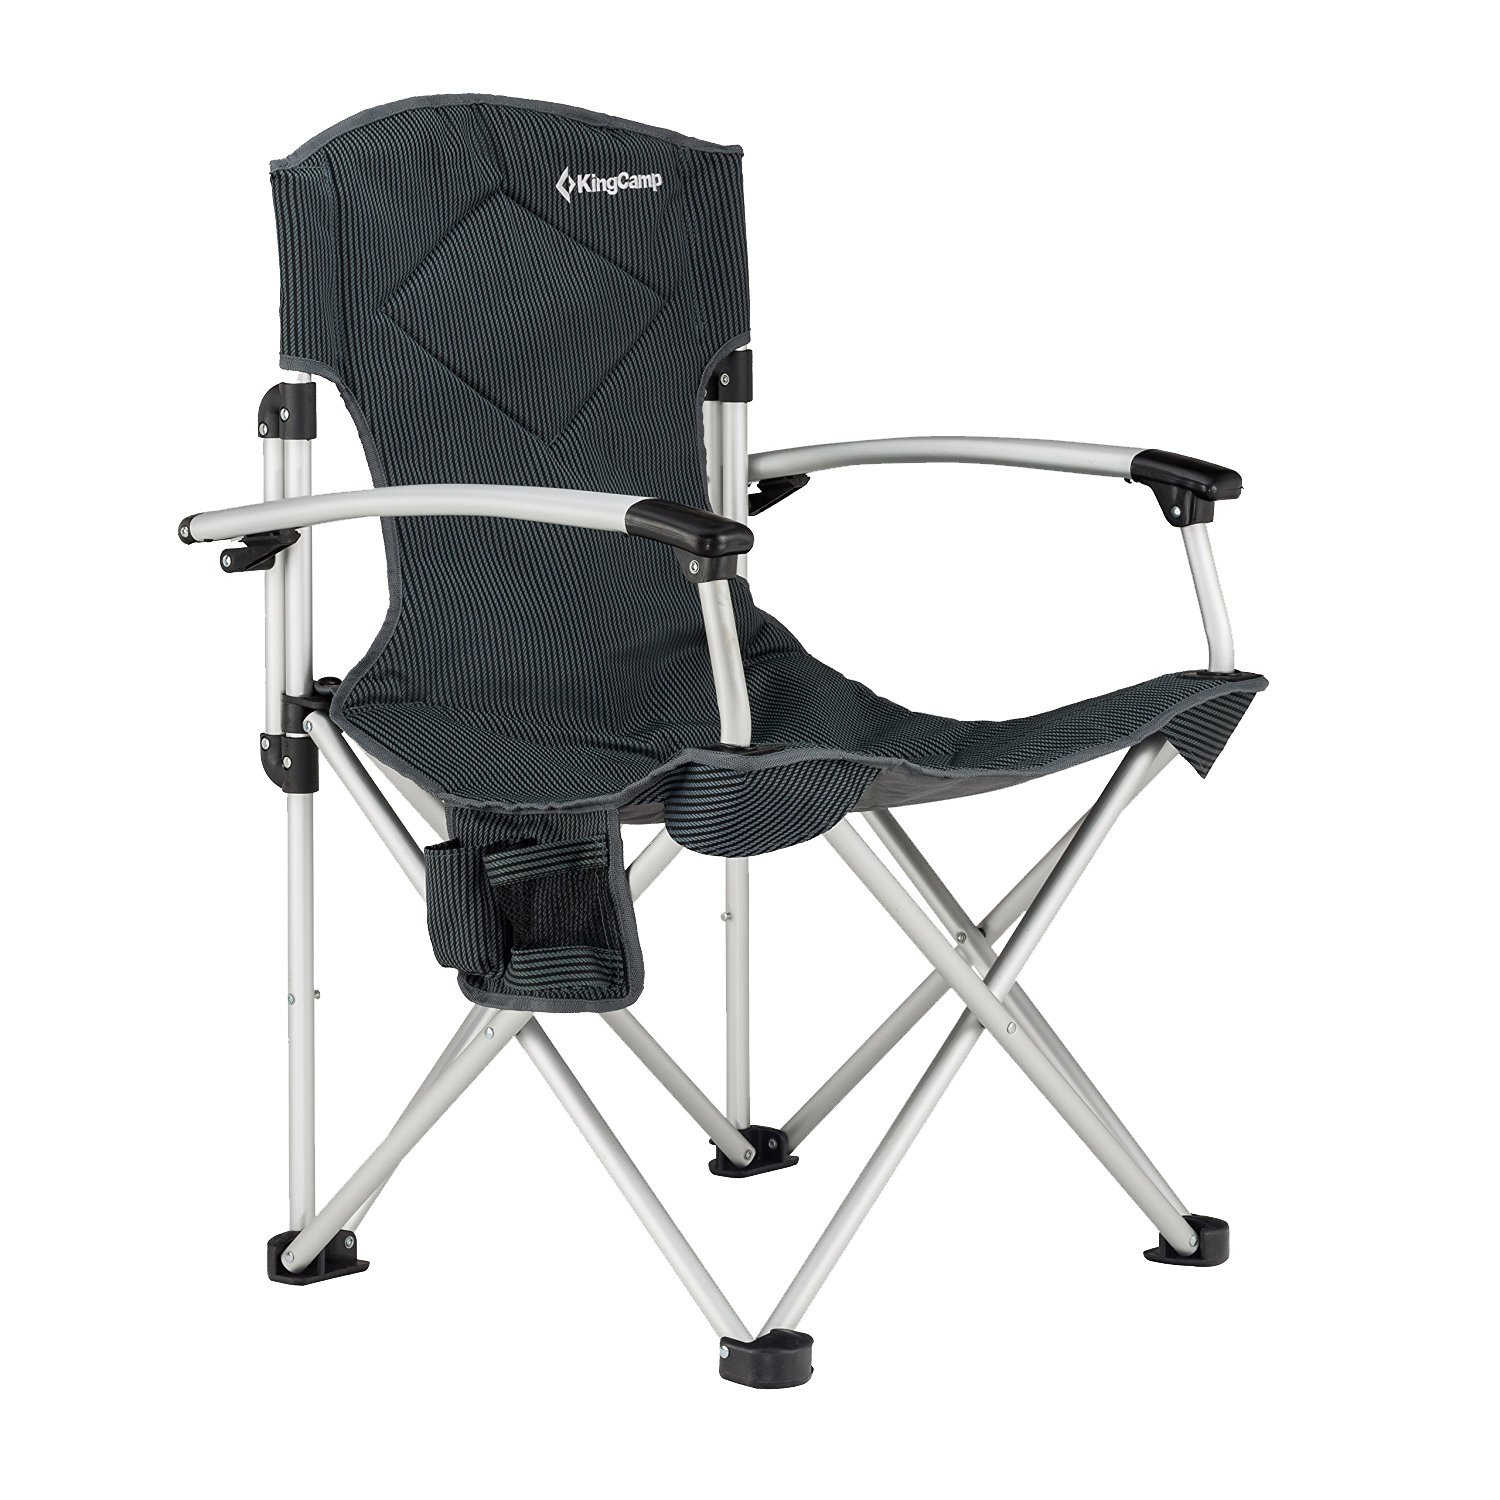 KingCamp Aluminum Portable Heavy Duty Folding Camping Chair With Comfortable Smooth armrest with Carry Bag